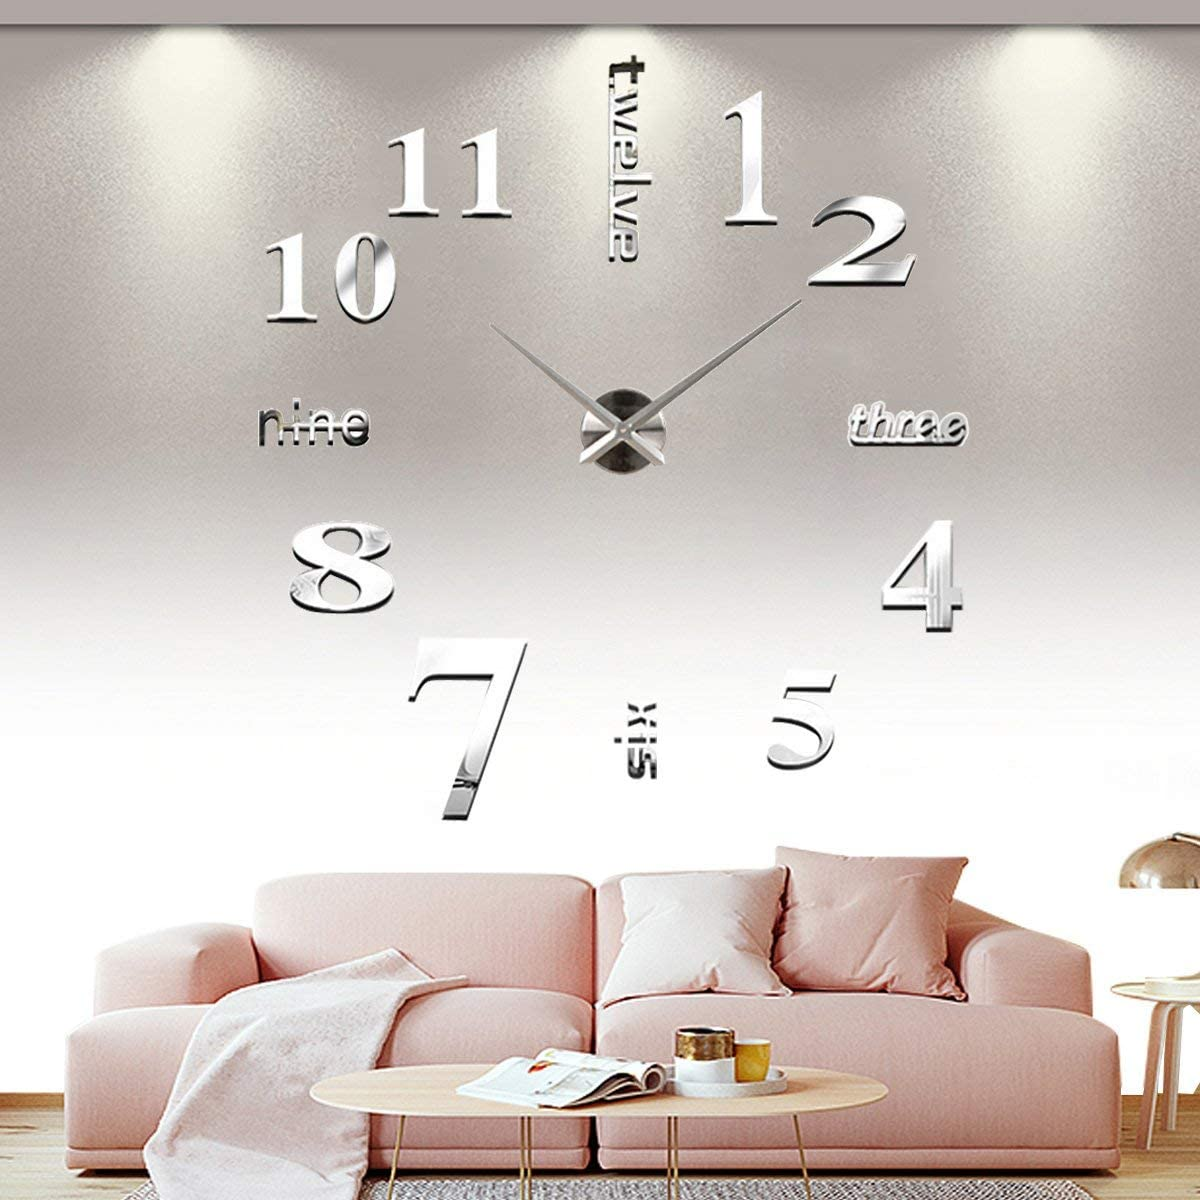 YESURPRISE 3D Frameless Large Wall Clock Modern Mute Mirror Surface DIY Room Home Office Decorations – Silver